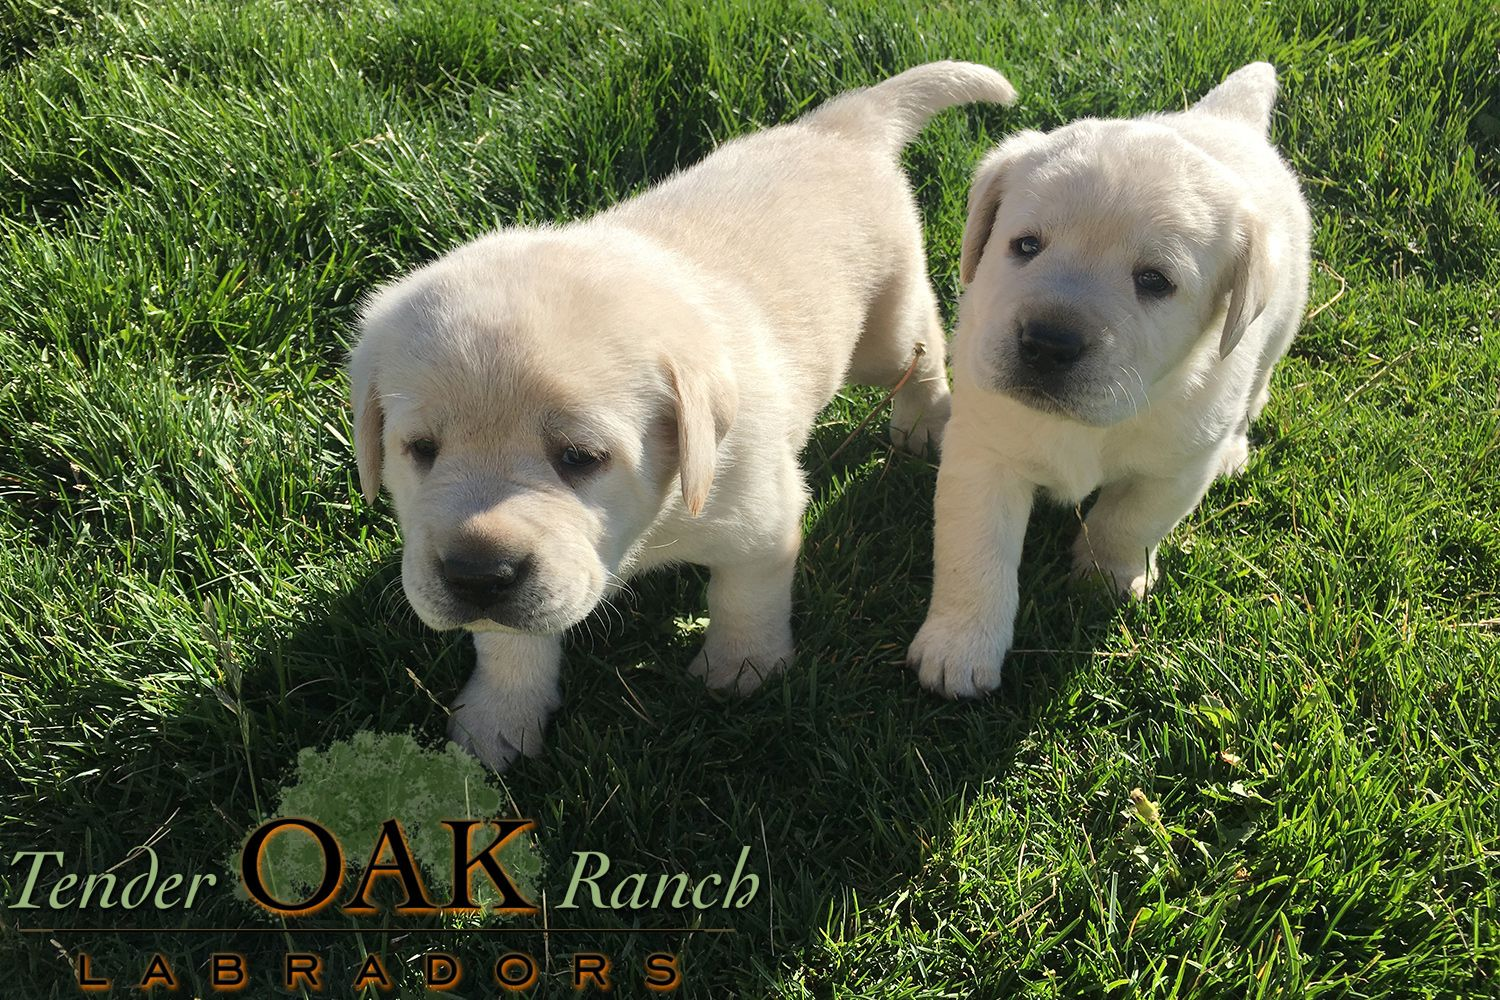 Labrador Puppies For Sale In San Diego In 2020 Labrador Puppies For Sale Labrador Retriever Labrador Retriever Puppies